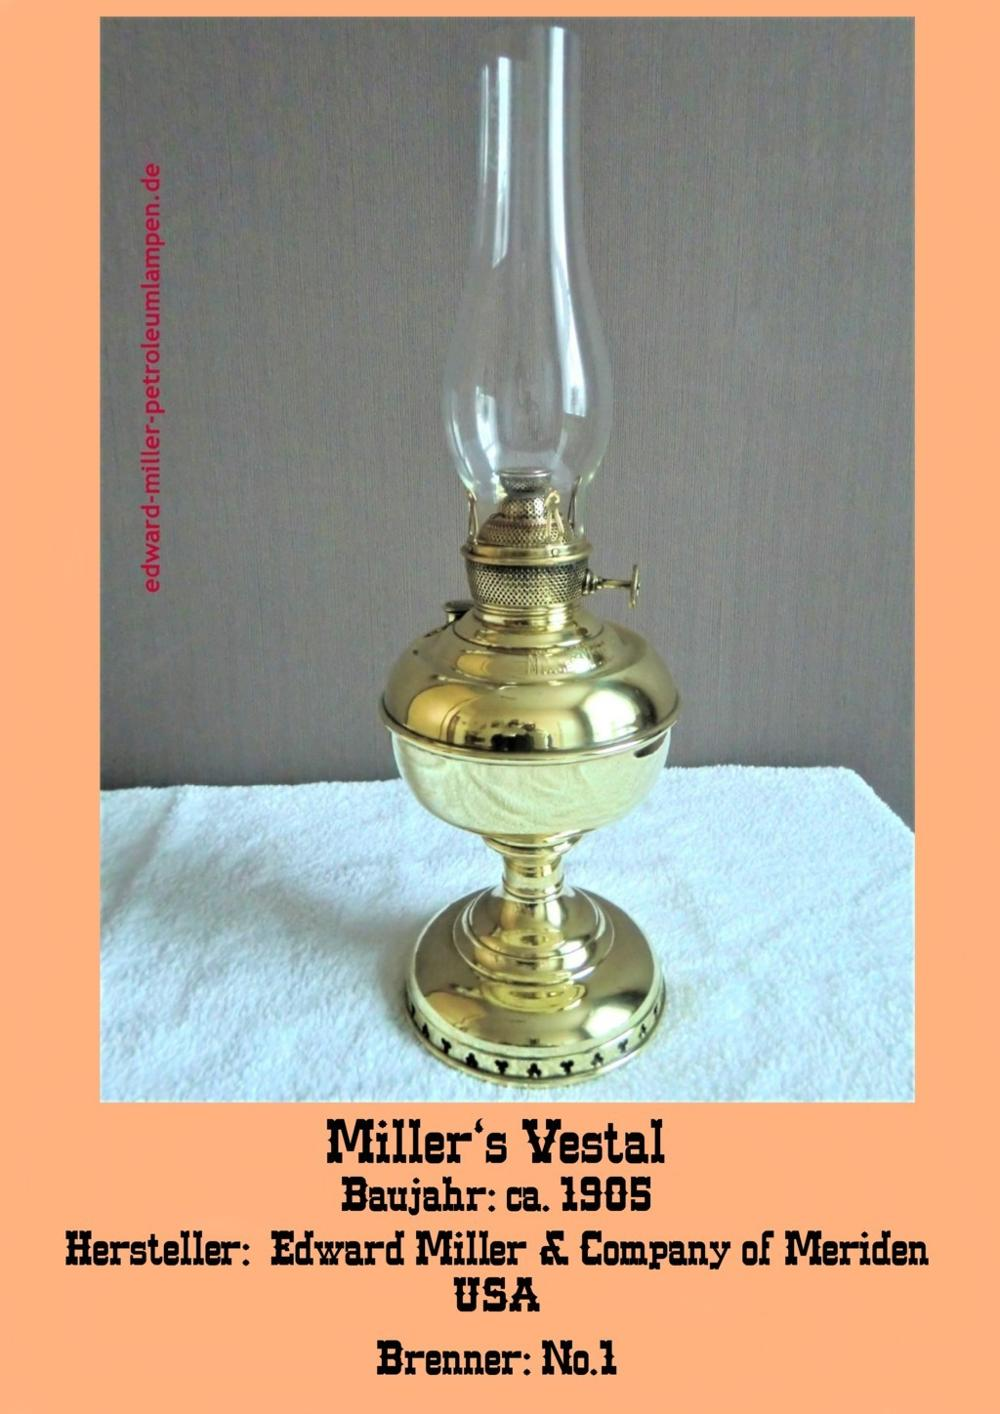 Edward Miller & Co.Lamp